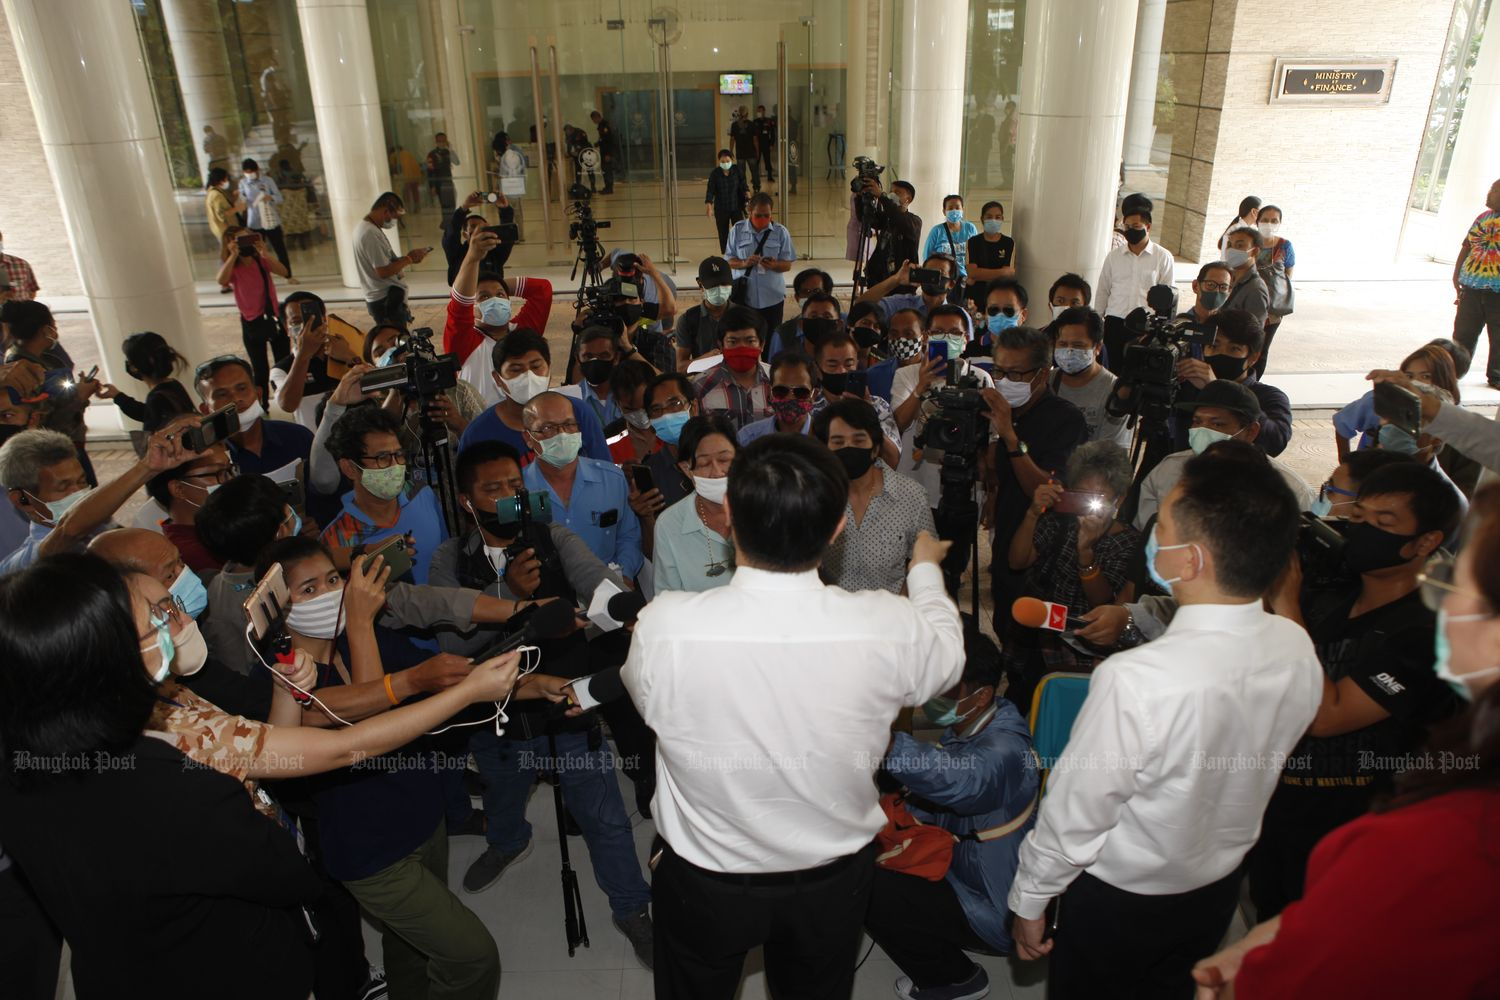 Dozens of people whose applications for the 5,000-baht aid was turned down gather at the Finance Ministry in Bangkok to demand explanations on Tuesday. (Photo by Nutthawat Wicheanbut)